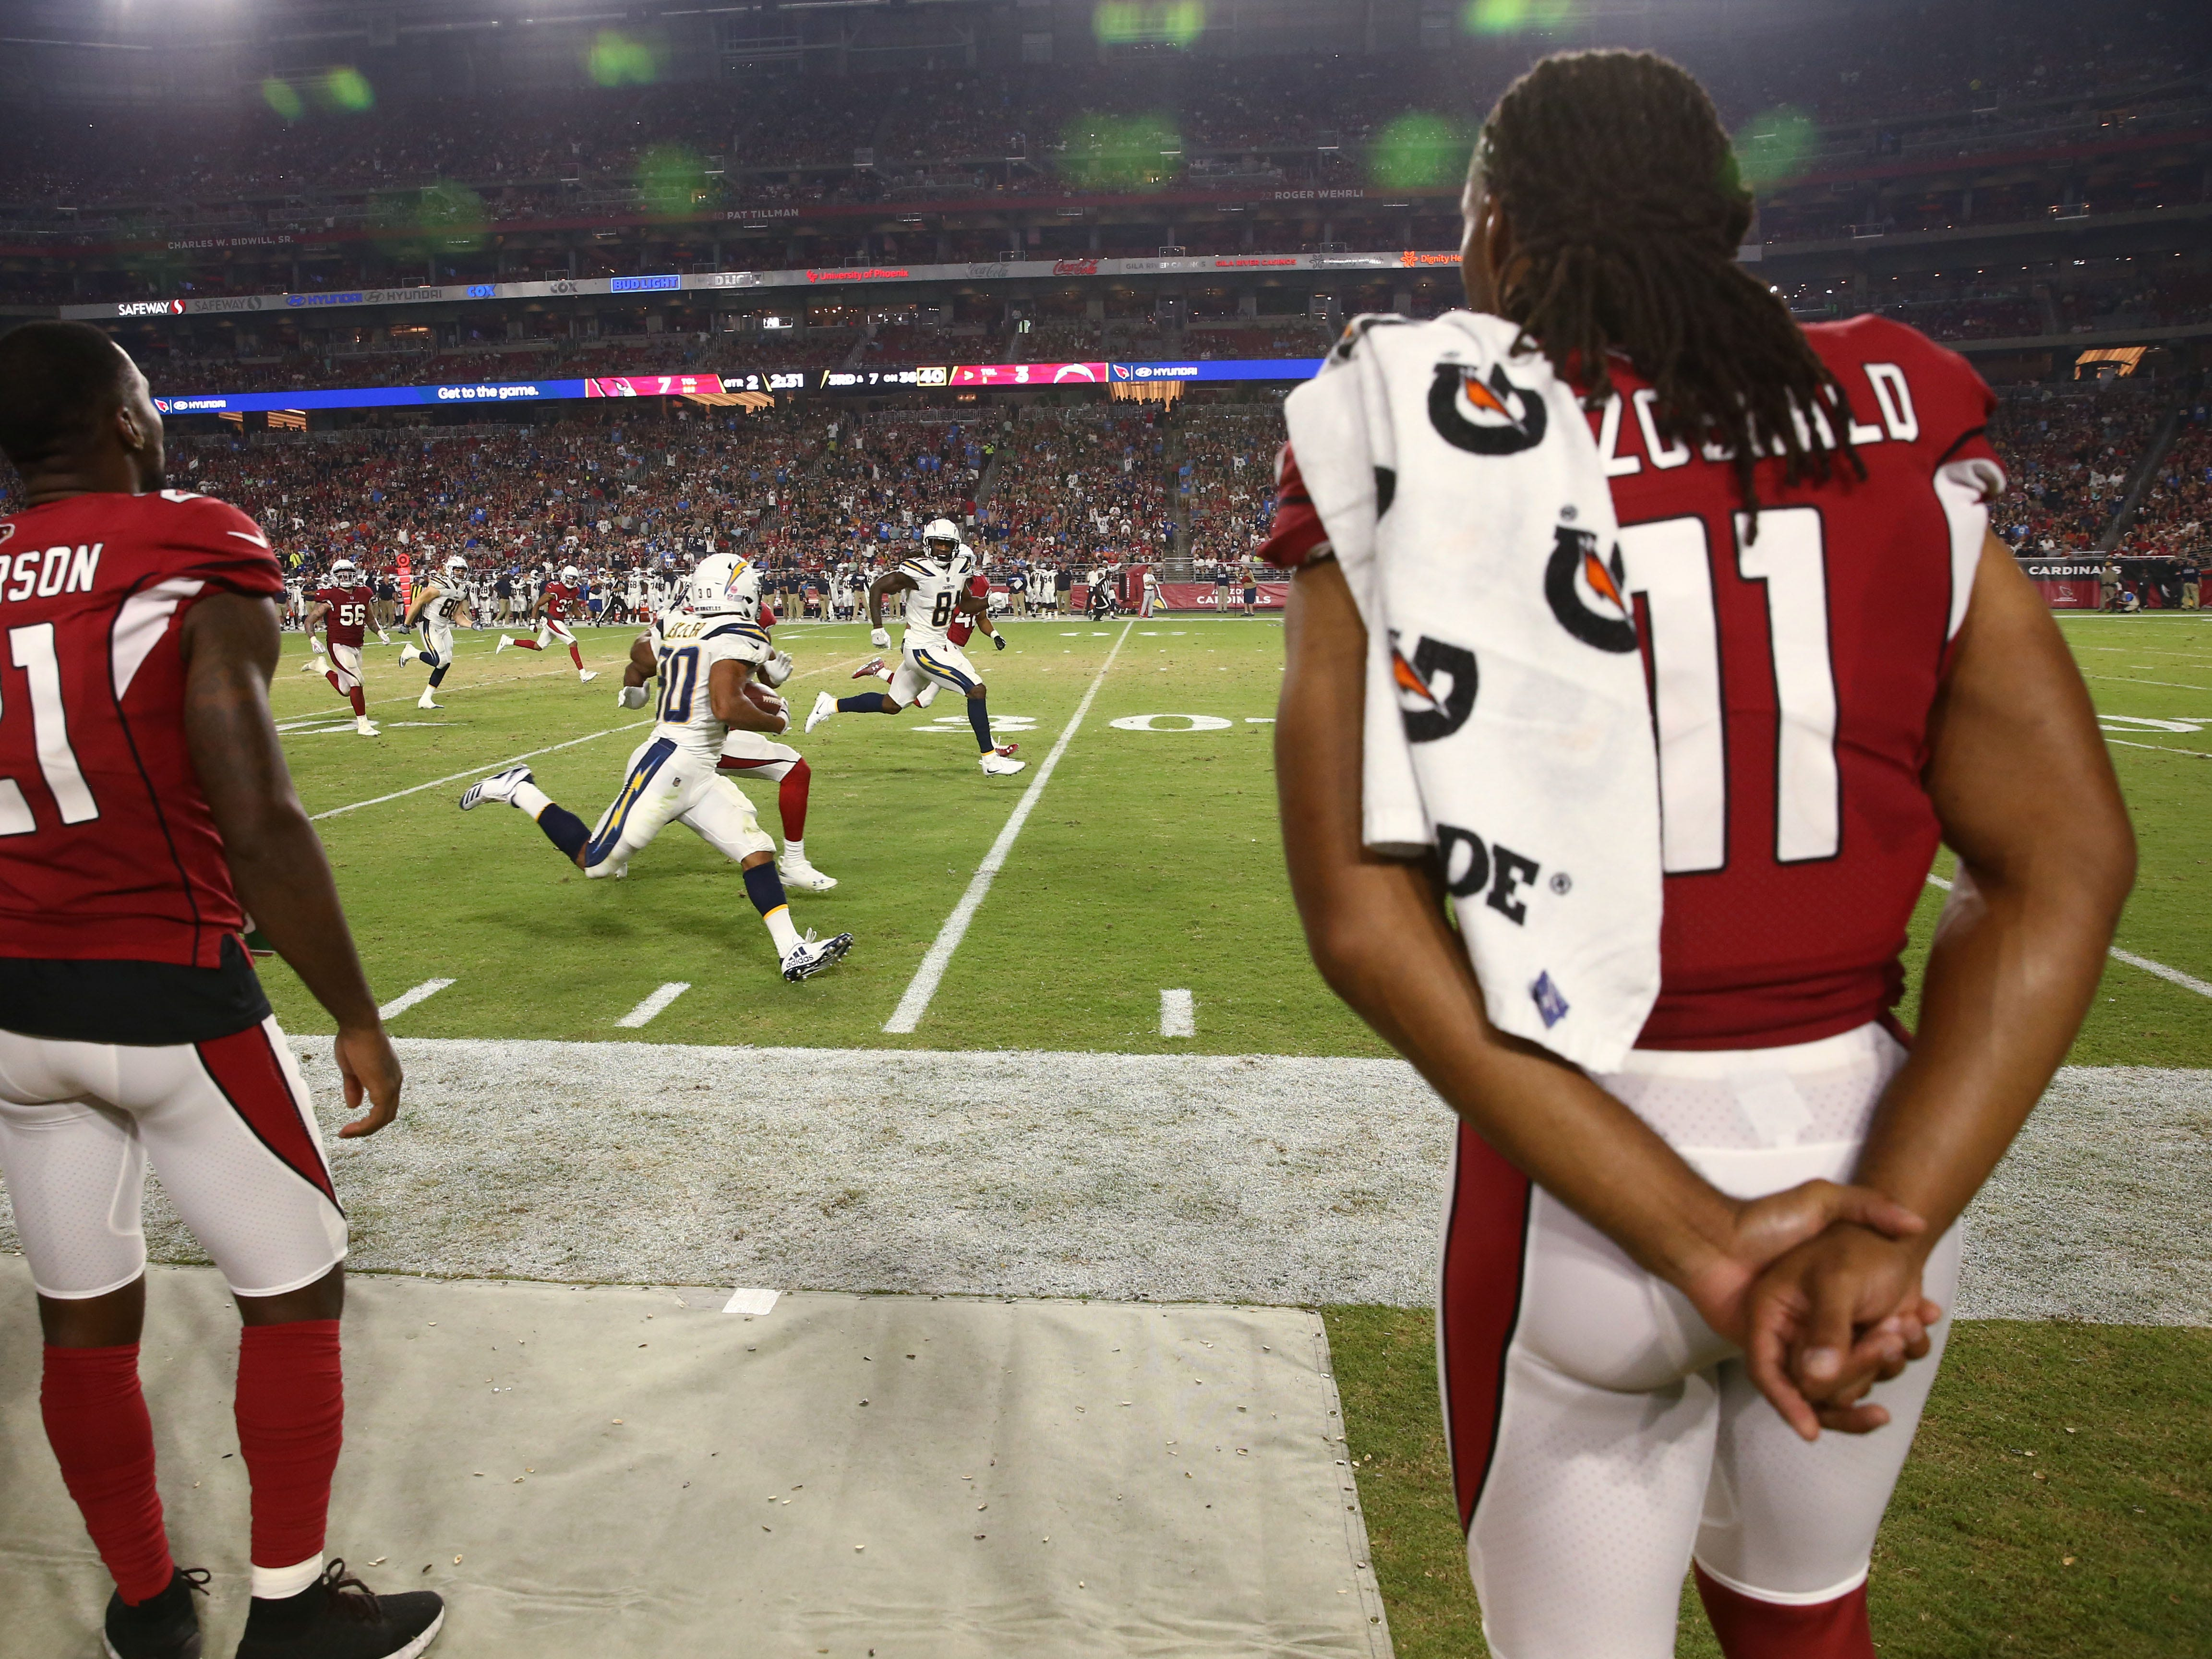 Arizona Cardinals Patrick Peterson and Larry Fitzgerald watch the action from the sideline against the L.A. Chargers in the first half during a preseason NFL football game on Aug. 11, 2018 at University of Phoenix Stadium in Glendale, Ariz.